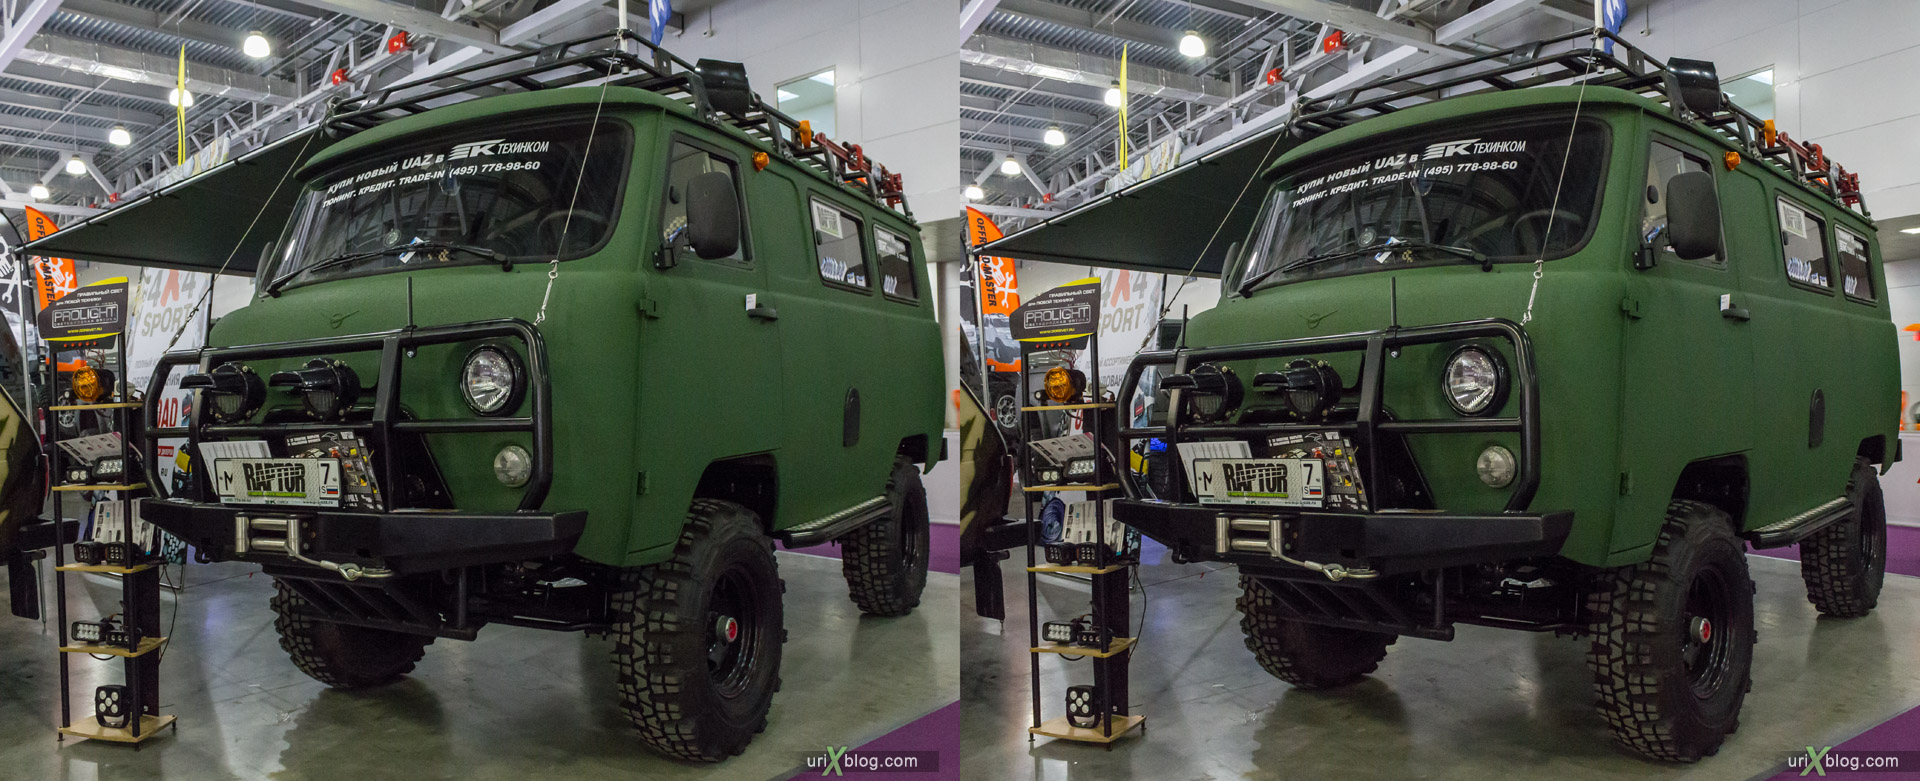 2014, New UAZ, Moscow International Automobile Salon, MIAS, Crocus Expo, Moscow, Russia, augest, 3D, stereo pair, cross-eyed, crossview, cross view stereo pair, stereoscopic